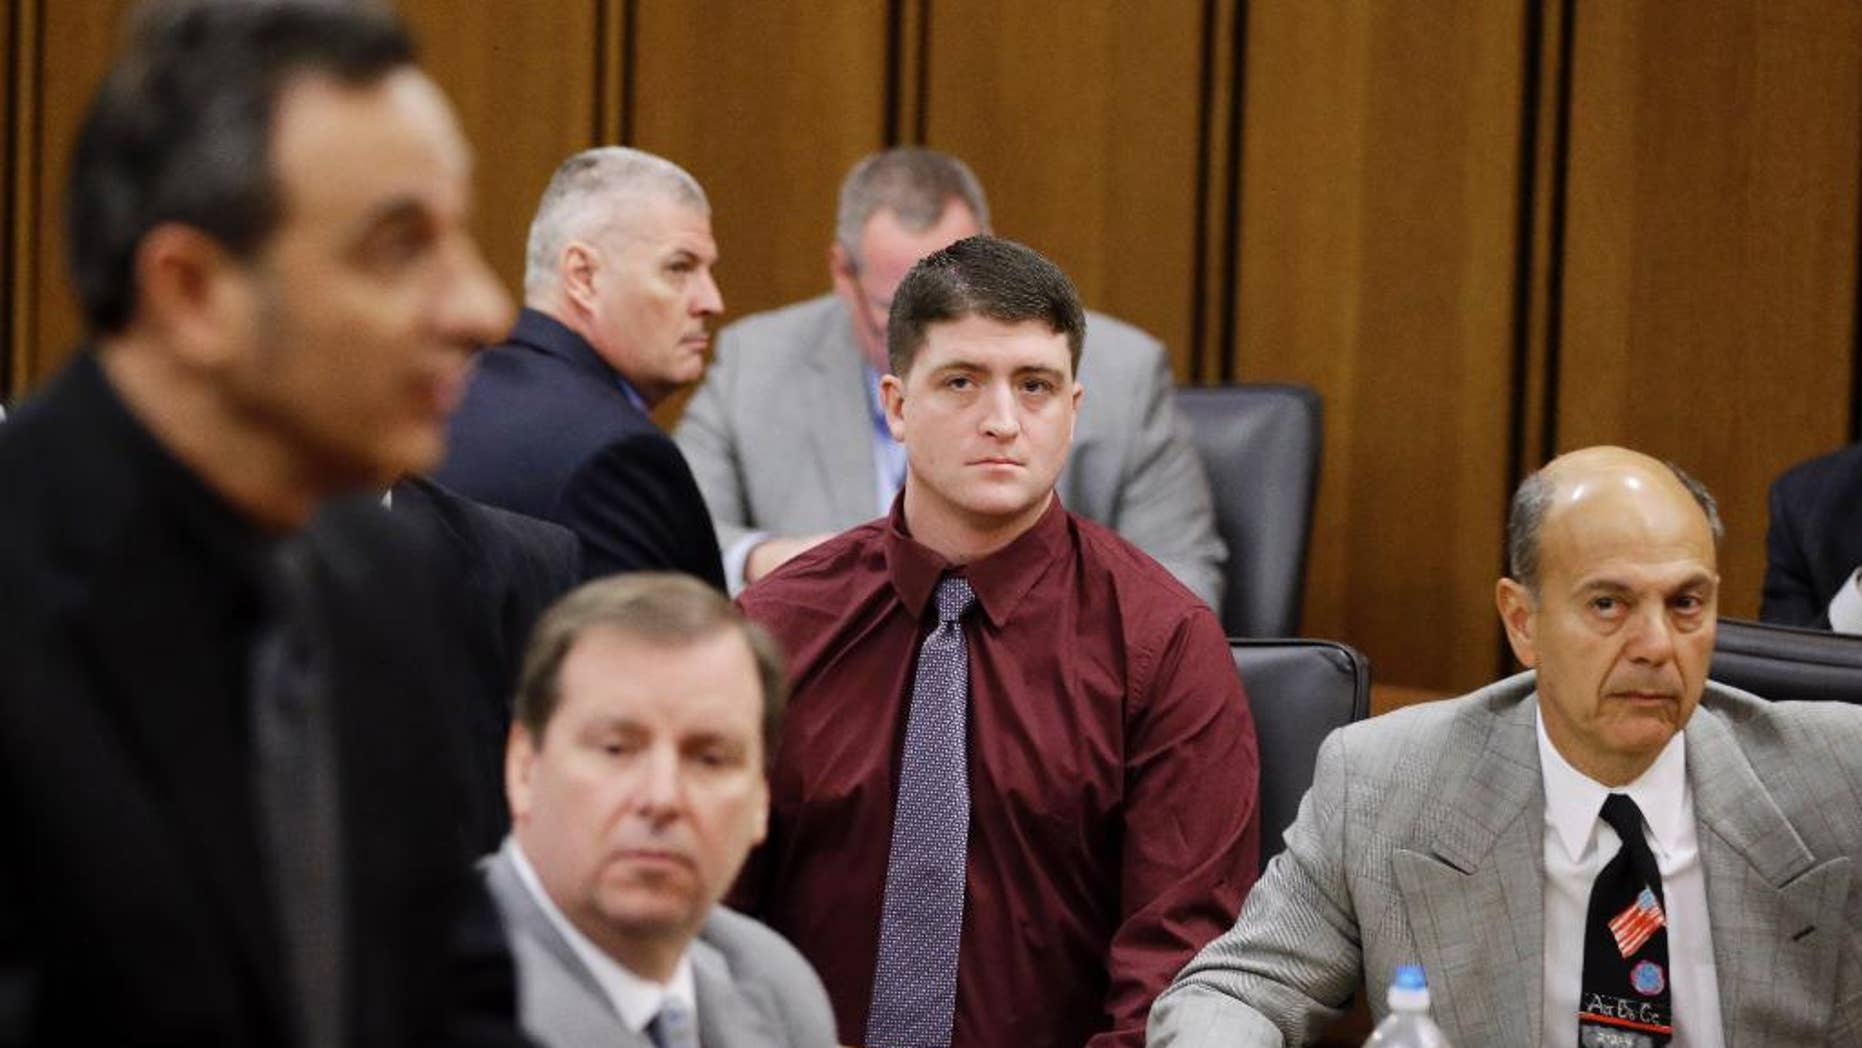 In this Dec. 17, 2014 photo, suspended Cleveland Police patrolman Michael Brelo, center, watches during a court hearing in Cleveland. A motion filed Tuesday, March 10, 2015, asks a Cuyahoga County judge in Cleveland to dismiss two voluntary manslaughter charges against 30-year-old Brelo. The attorneys argue that Brelo is immune from prosecution because he believed his life was in danger when he jumped on the hood of the suspects' car and fired as many as 15 rounds through the windshield following a high-speed chase in November 2012. (AP Photo/Tony Dejak)